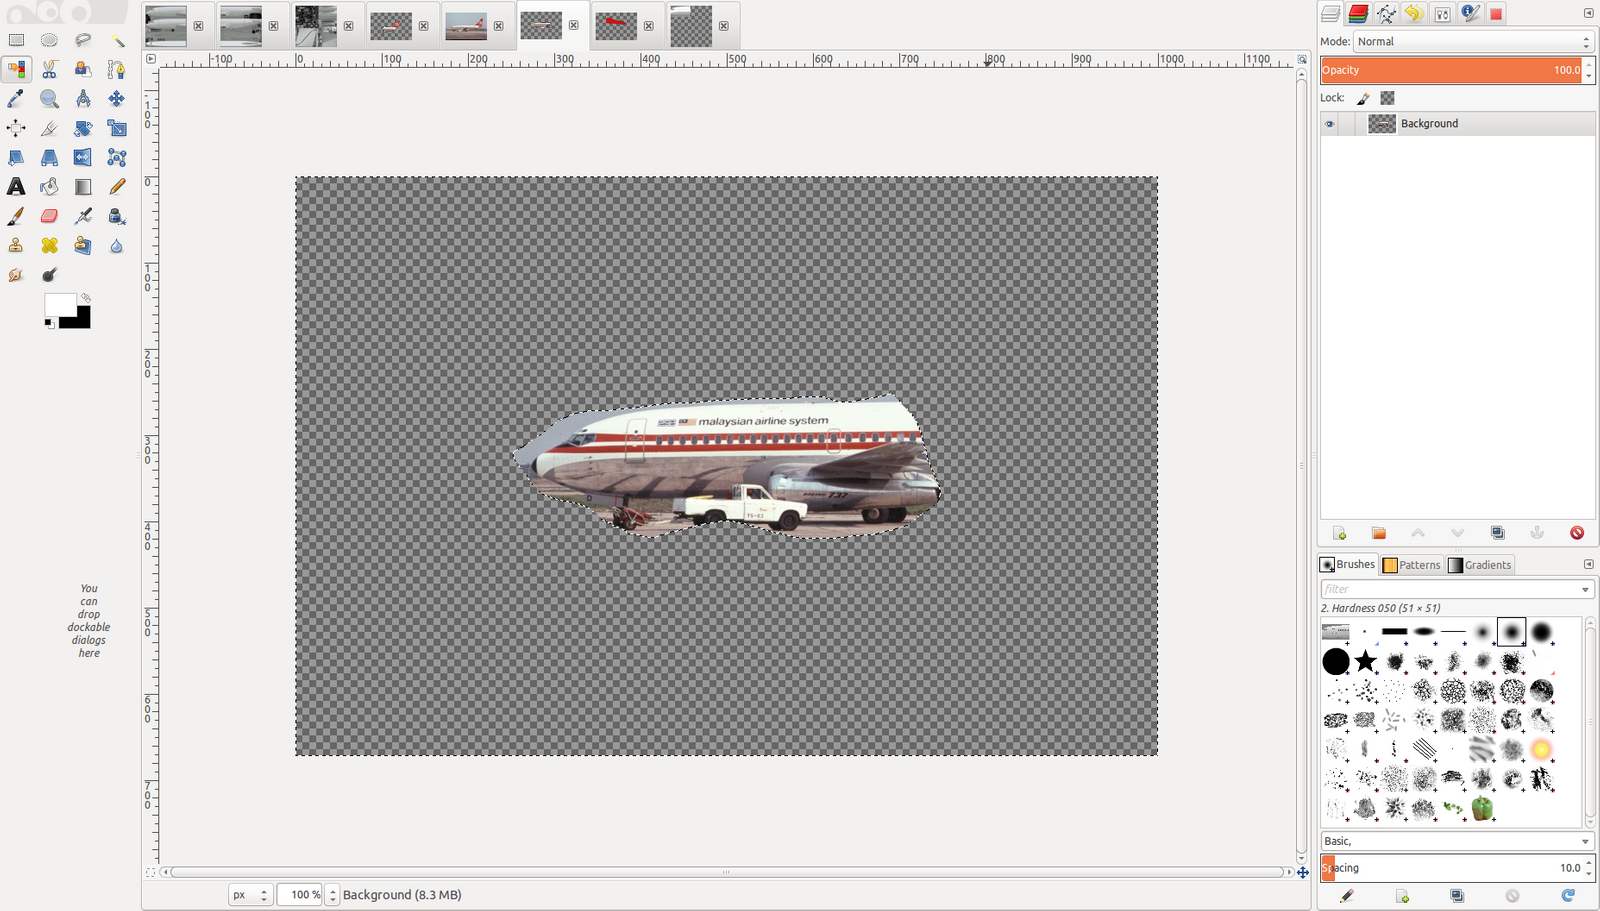 Flyjsim 737 V3 Liveries